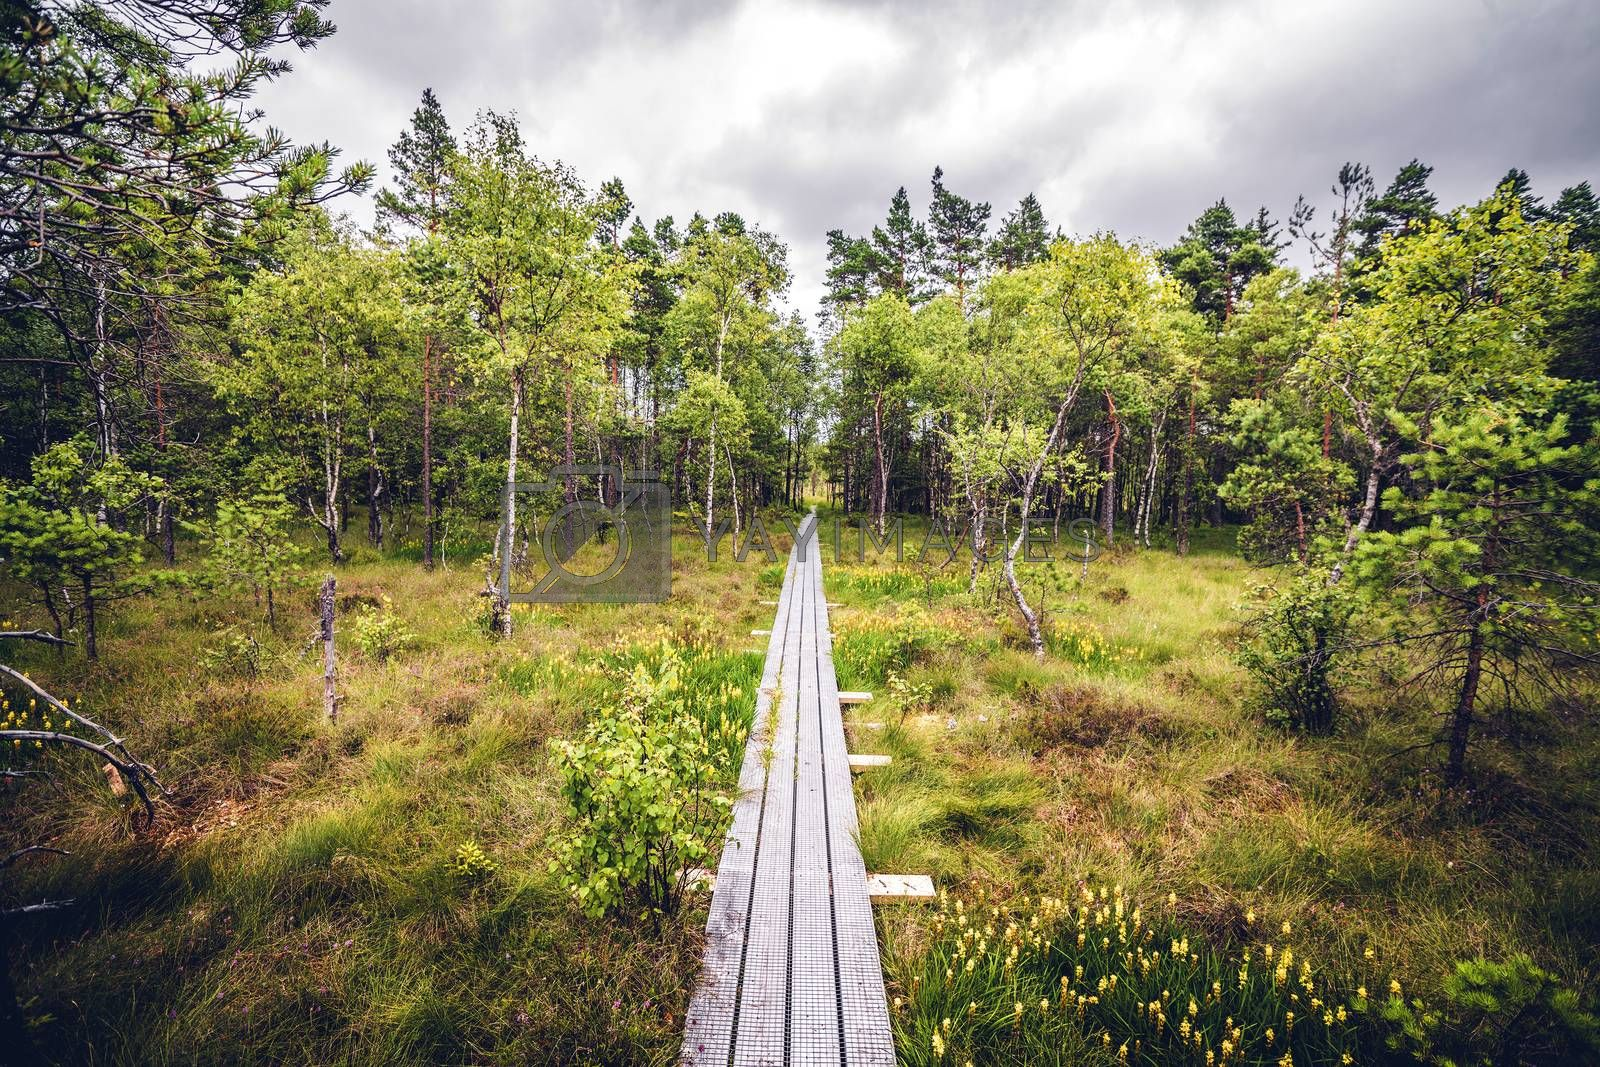 Wooden nature trail made of planks in a forest landscape with trees and grass